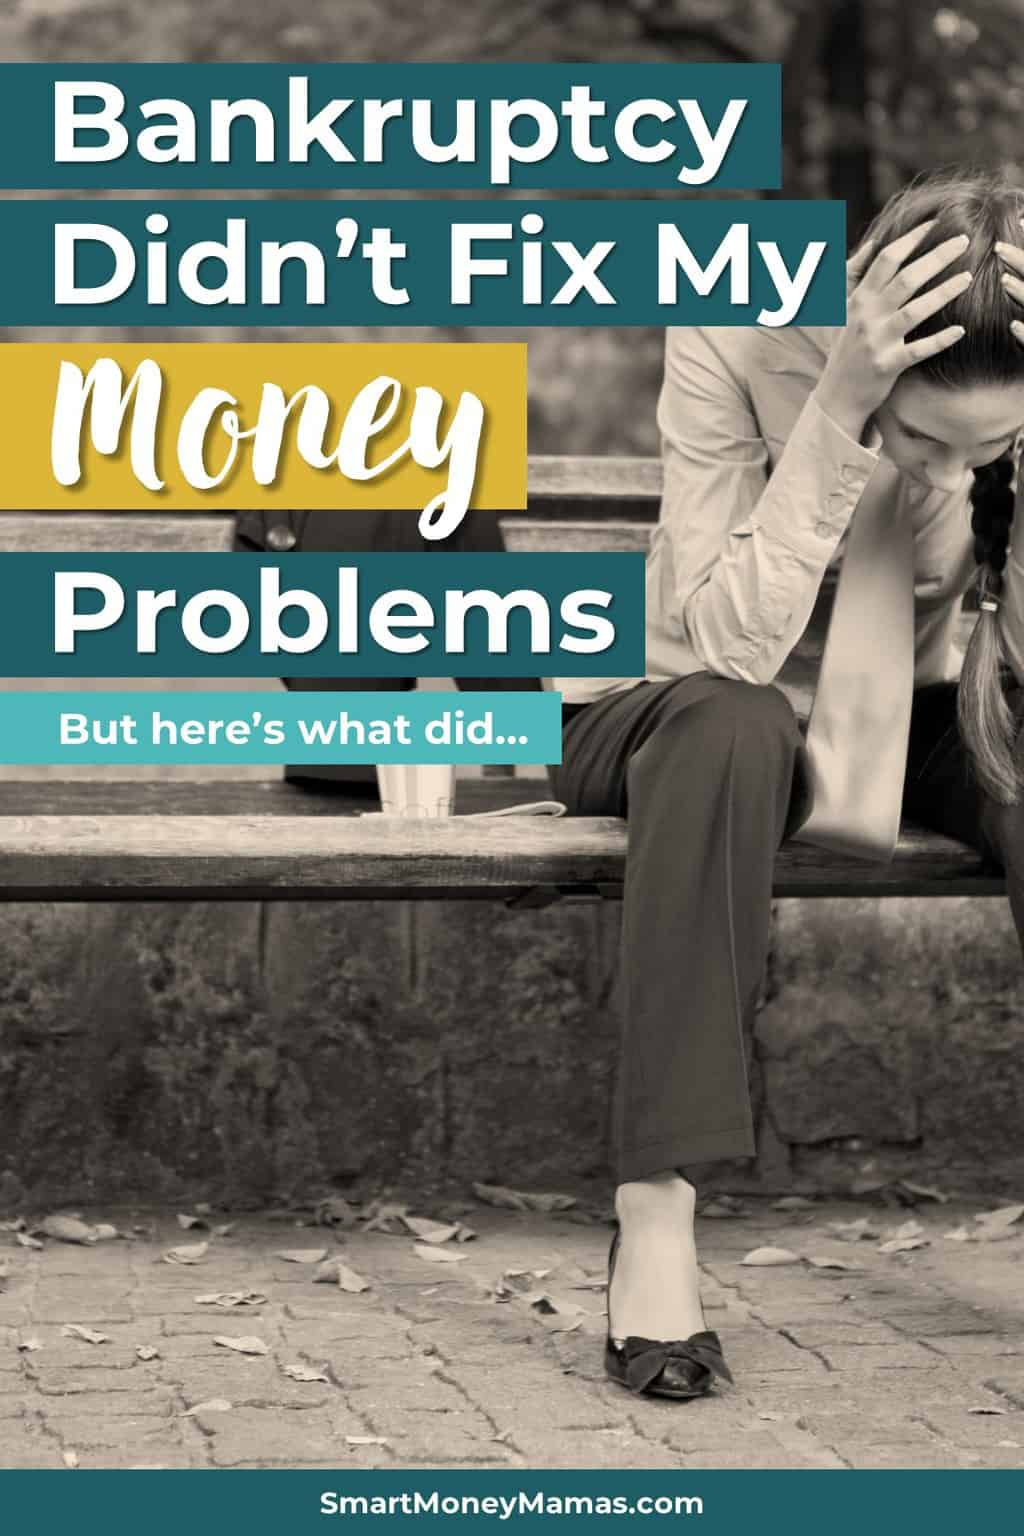 Bankruptcy Didn't Fix My Money Problems